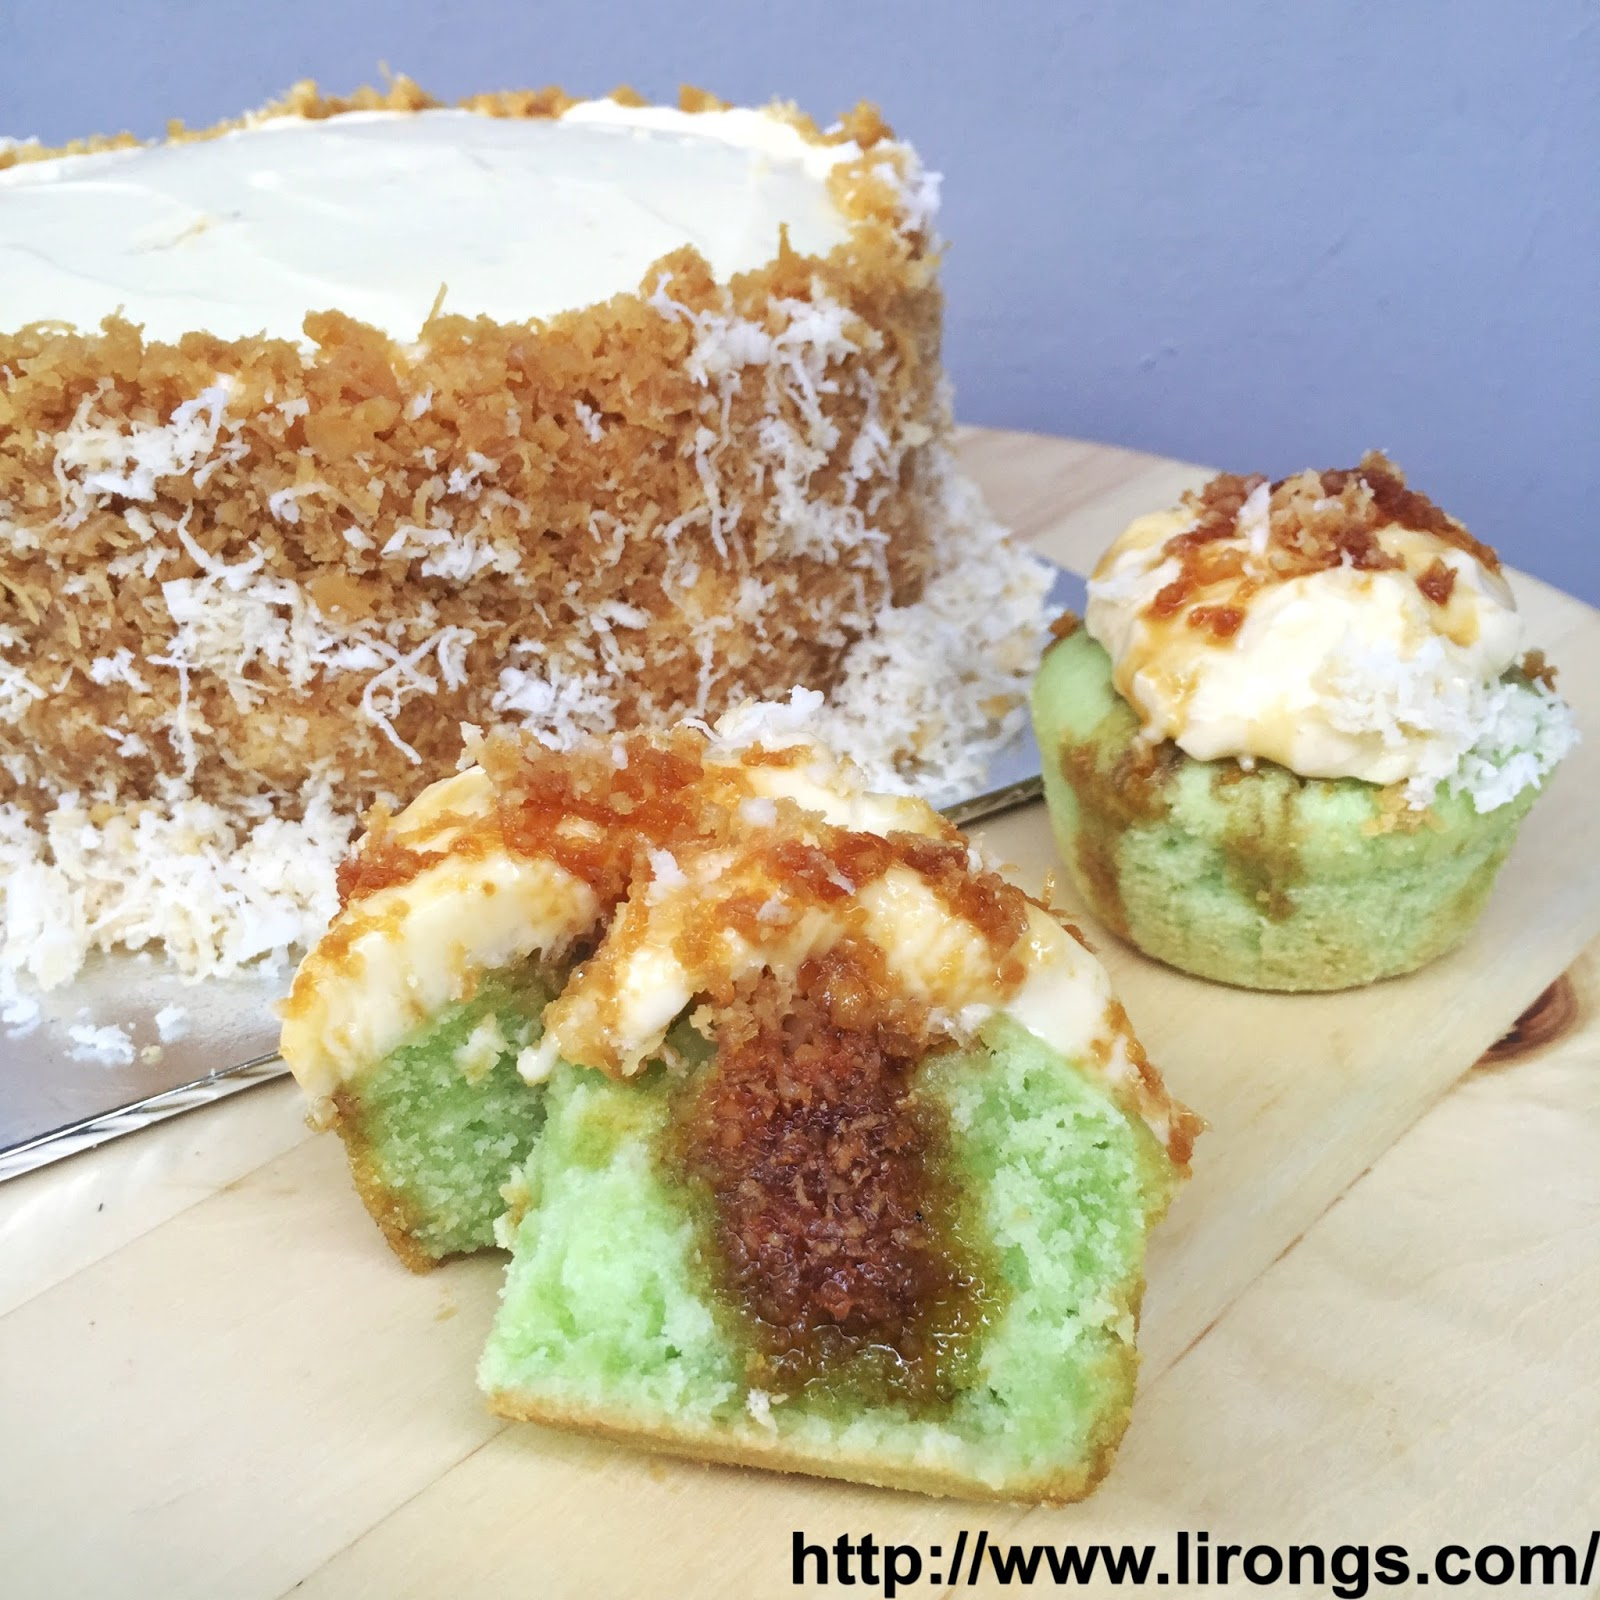 Lirong a singapore food and lifestyle blog recipe pandan gula lirong a singapore food and lifestyle blog recipe pandan gula melaka cake ondeh ondeh cupcakes forumfinder Choice Image